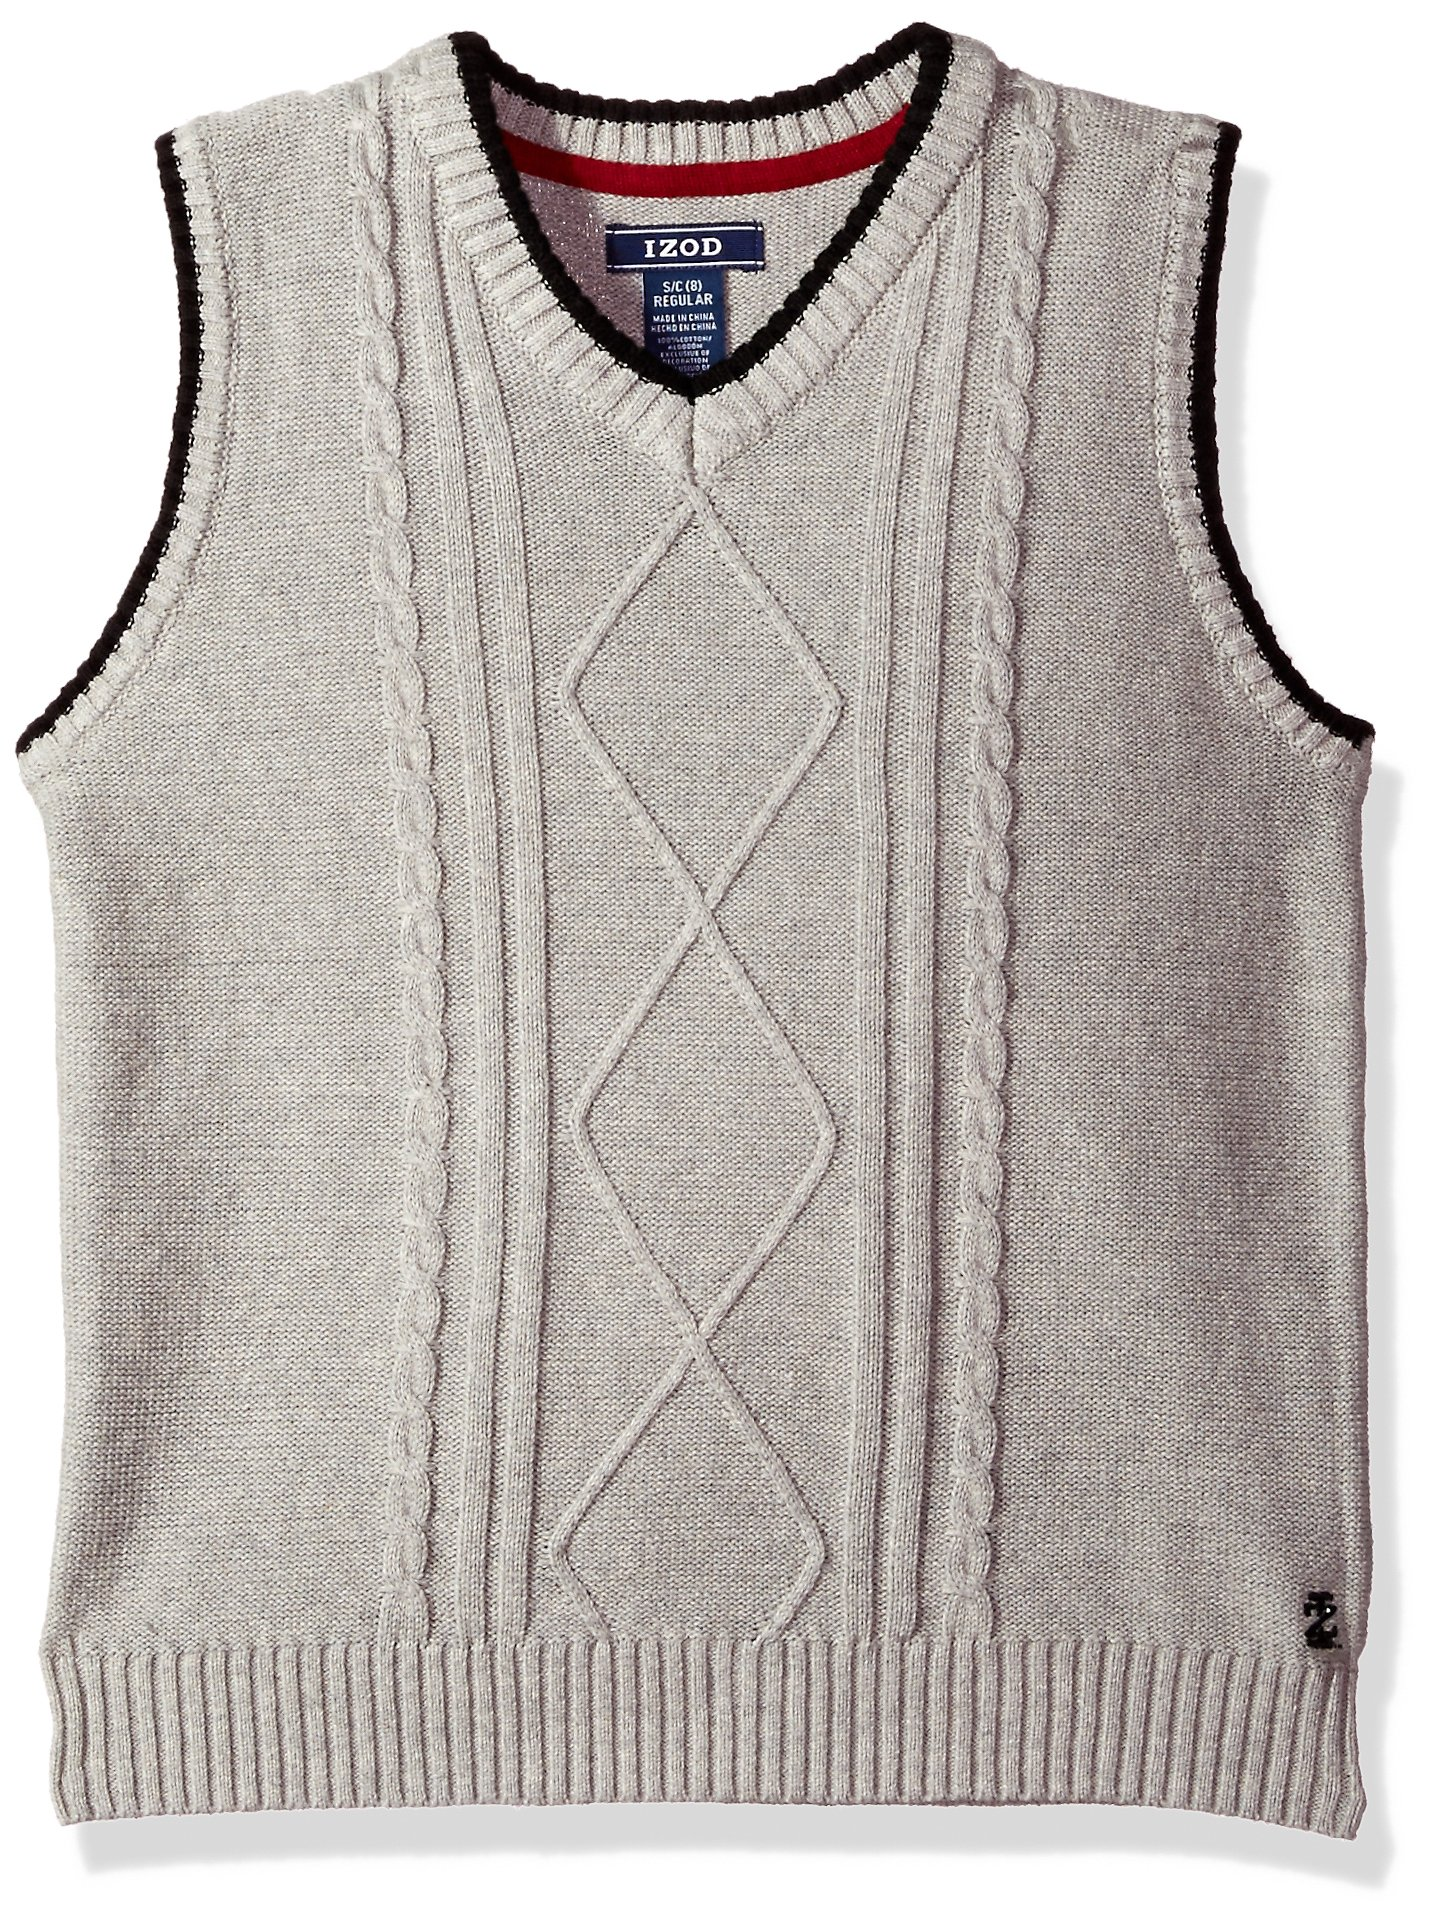 IZOD Big Boys' Cable Sweater Vest, Light Grey, X-Large